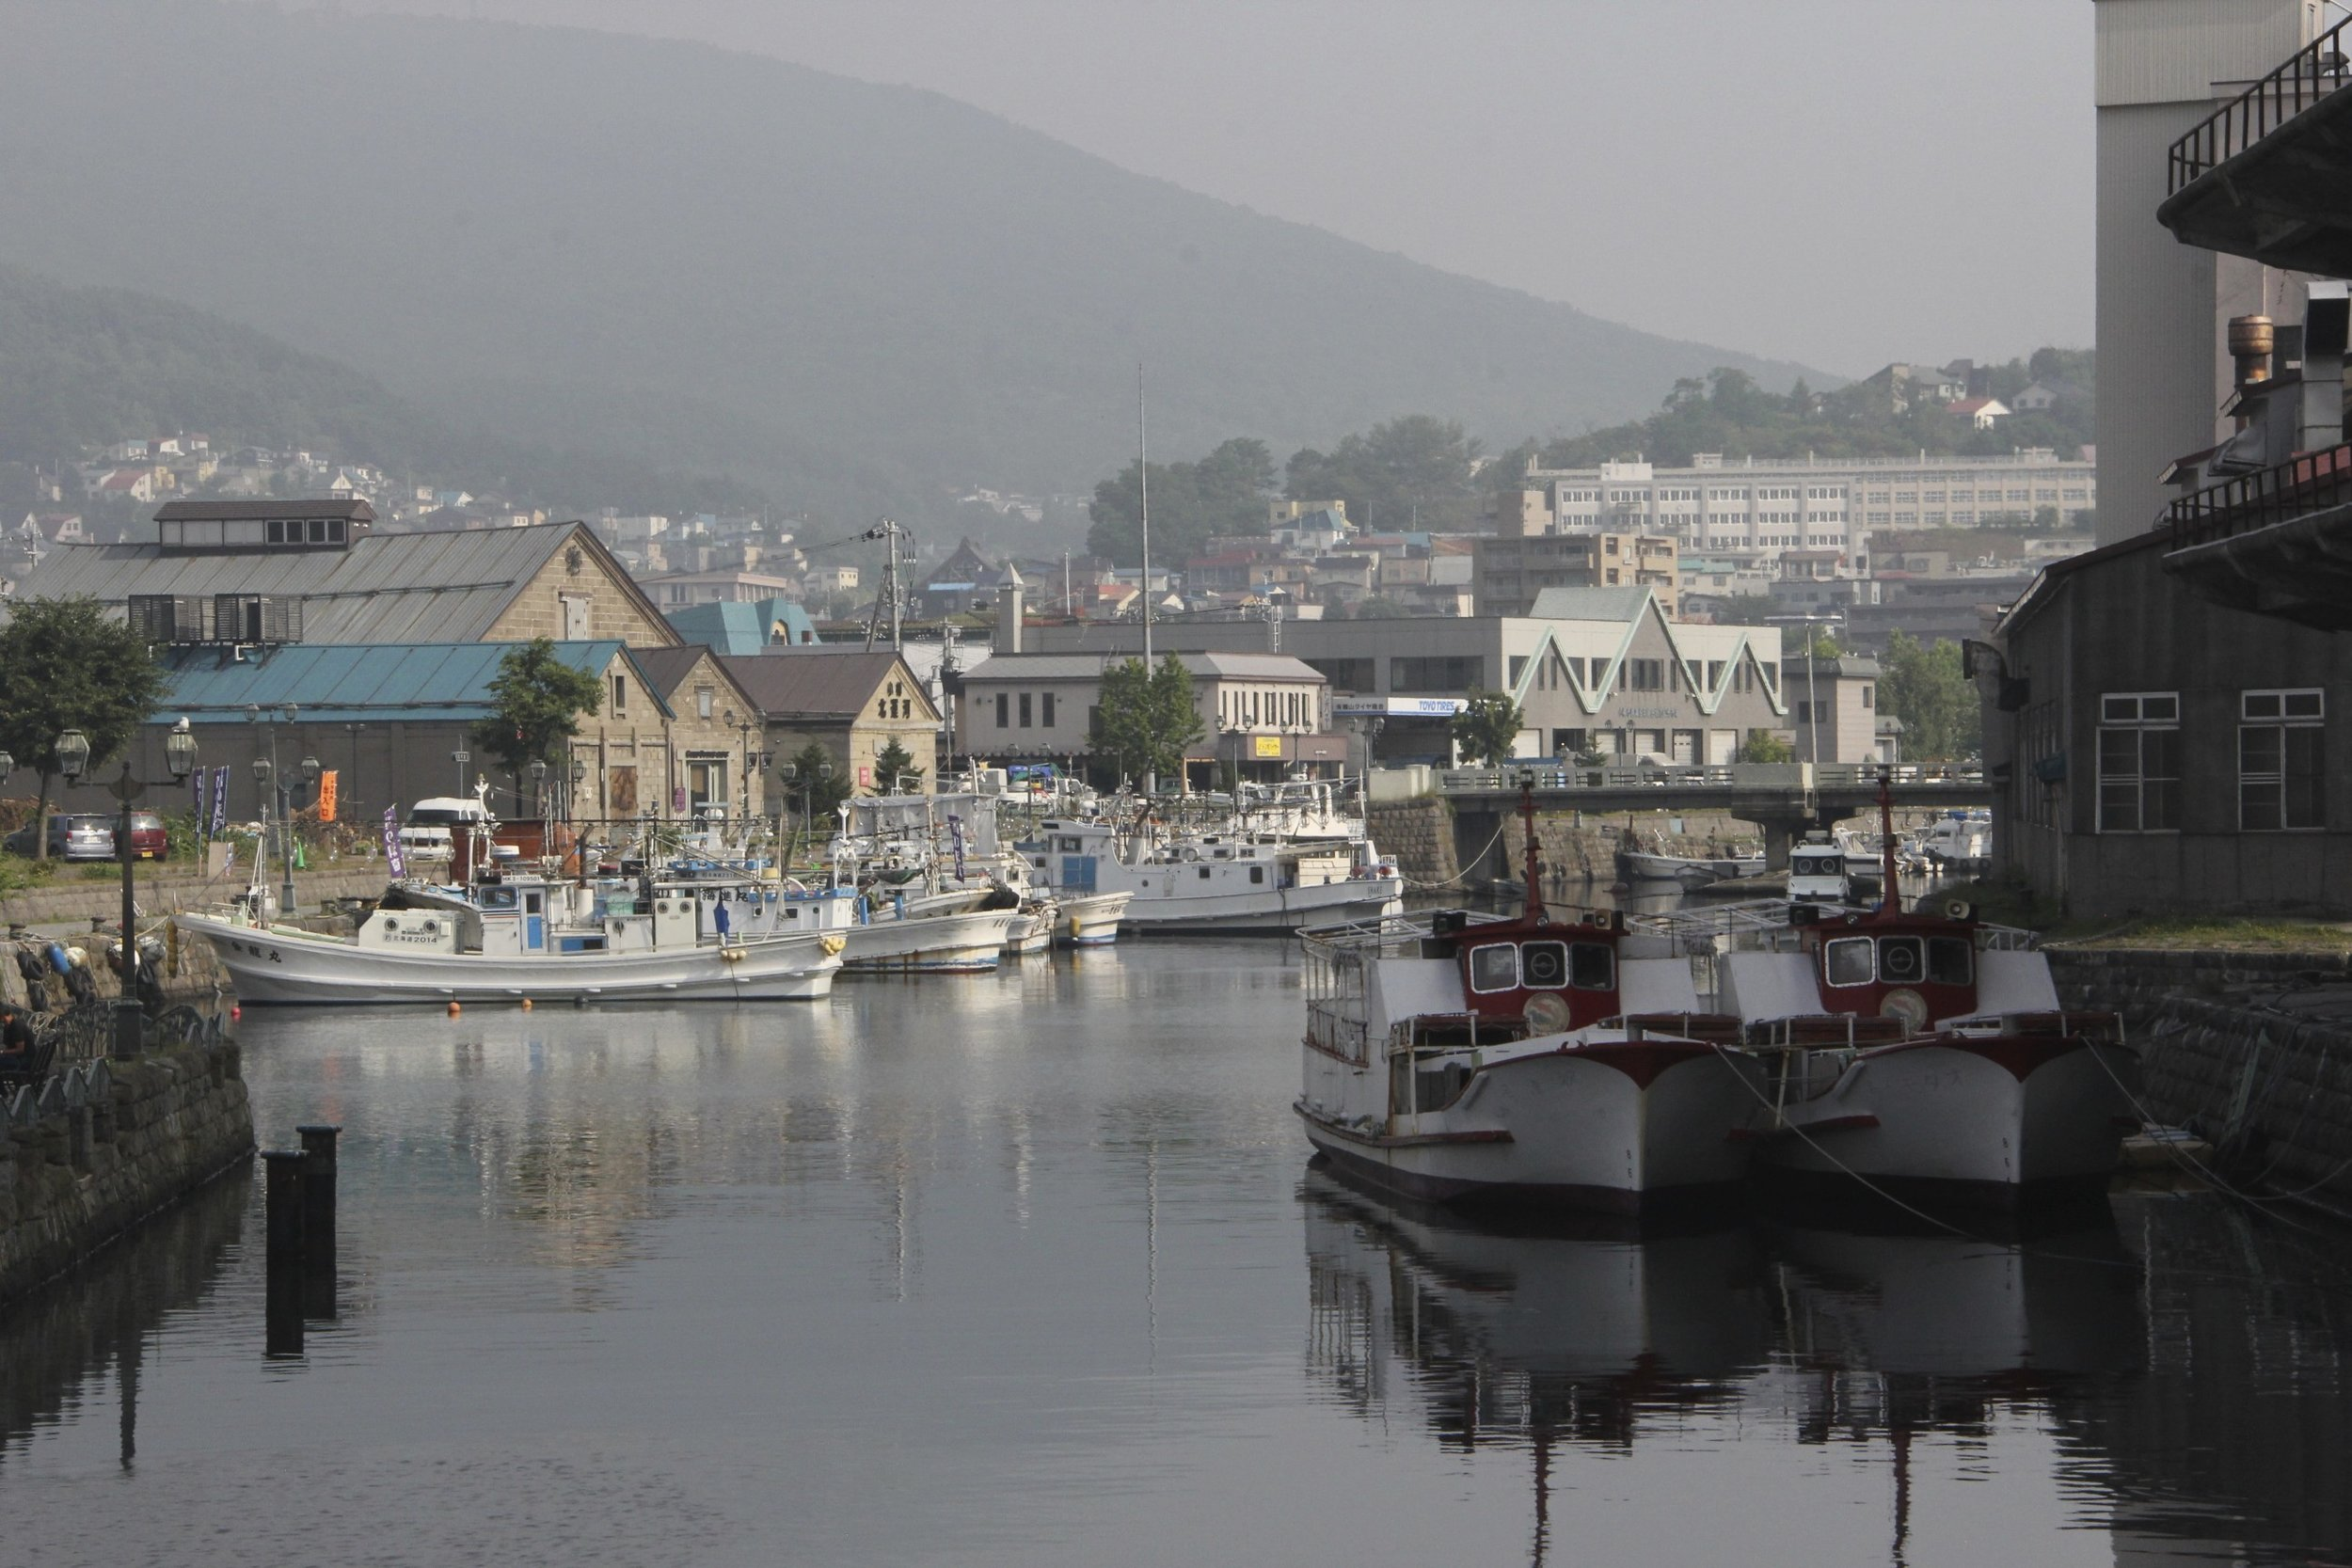 Otaru, a port city on Hokkaido (Japan's northernmost island), lies northwest of Sapporo on Ishikari Bay. The city is known for glassworks, music boxes and sake distilleries.